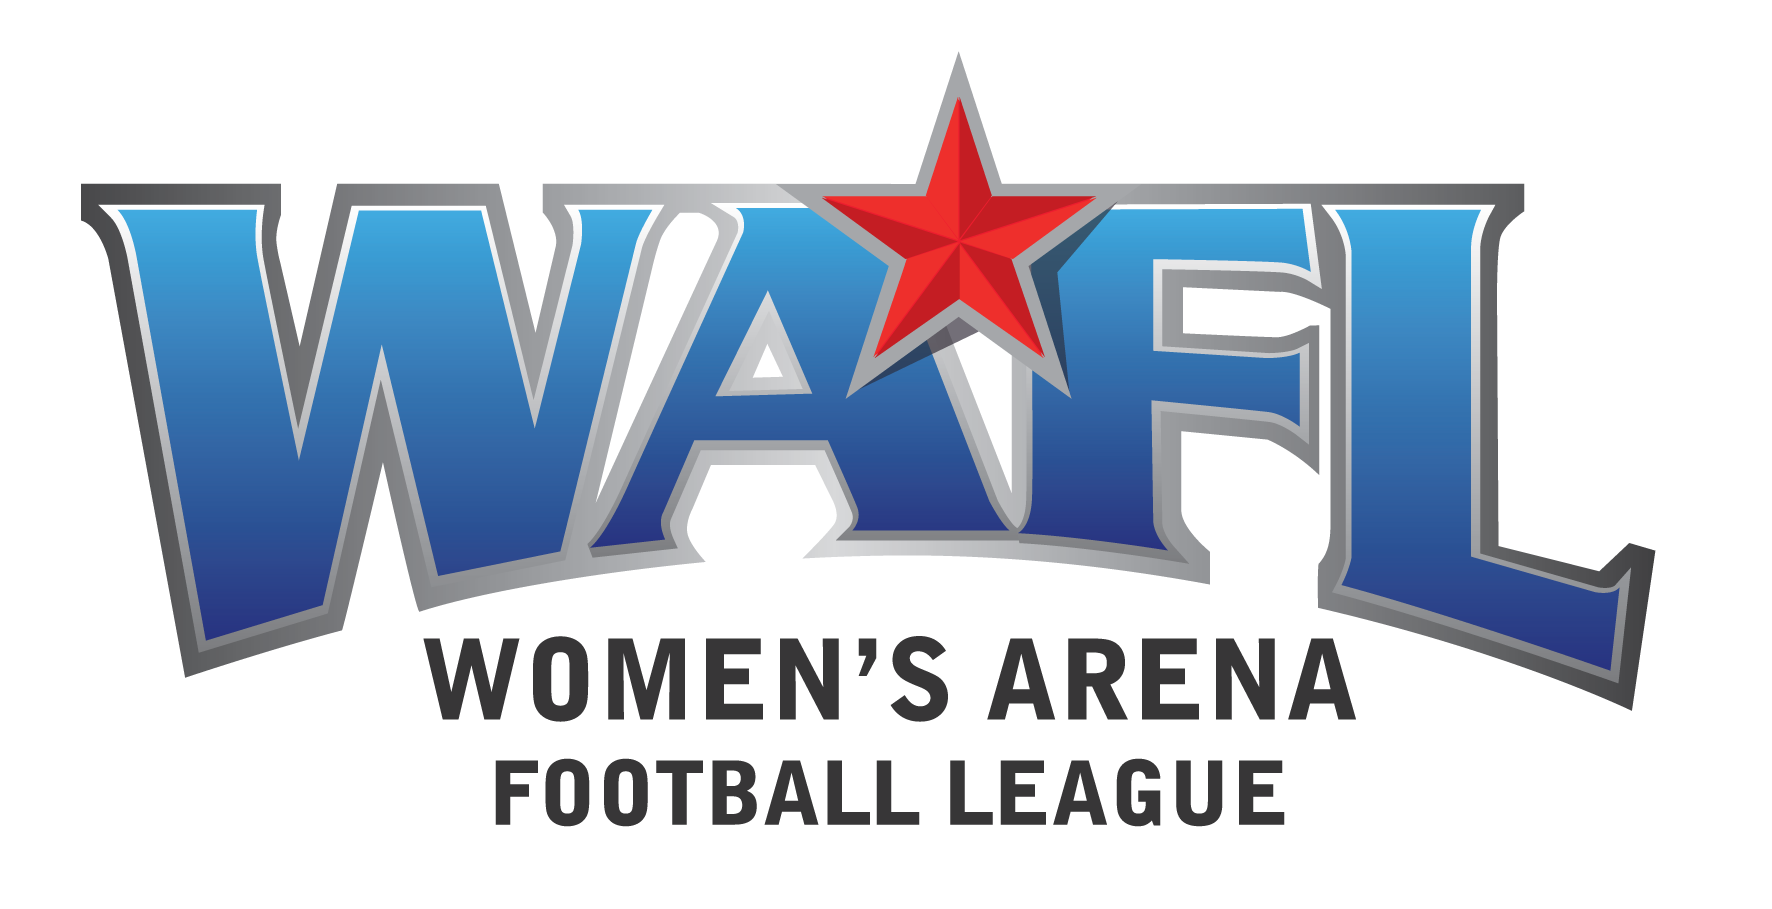 Women's Arena Football League